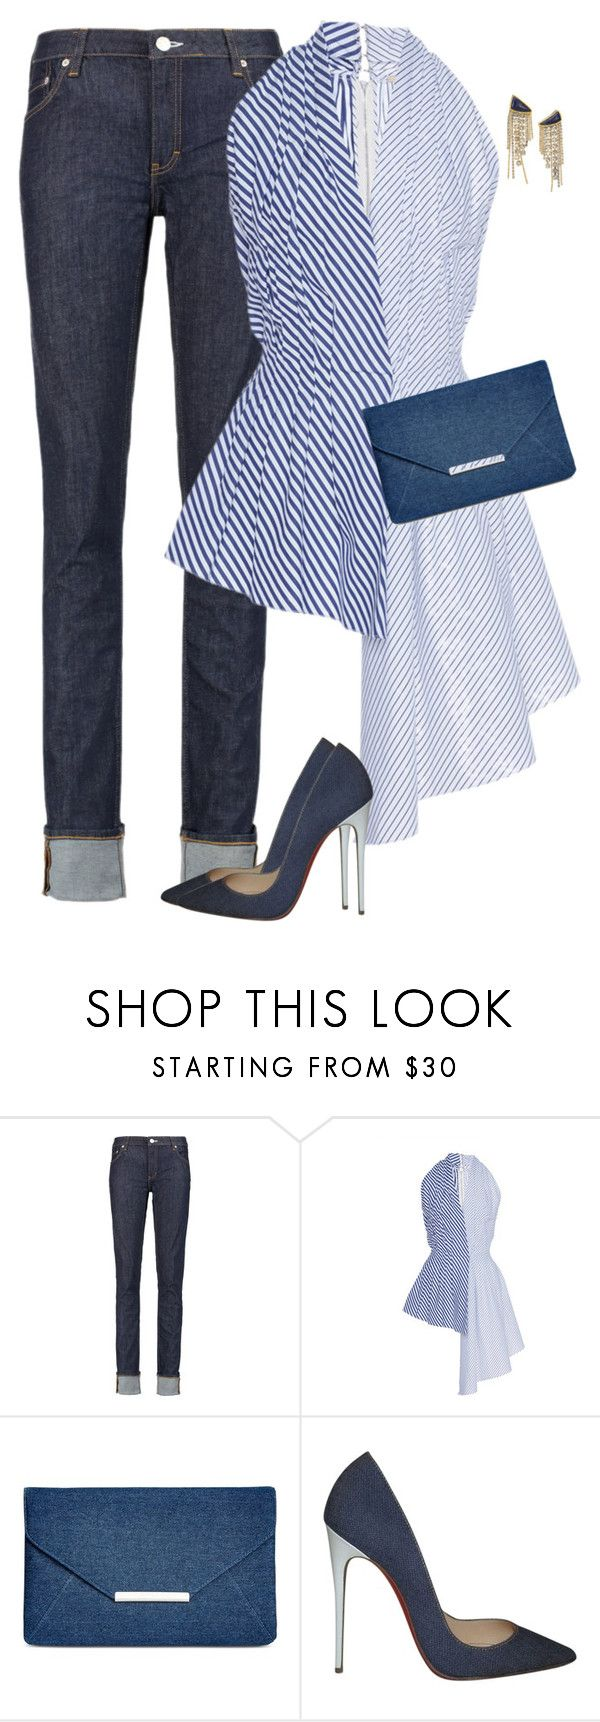 """""""Untitled #6578"""" by lisa-holt ❤ liked on Polyvore featuring Acne Studios, ADAM, Style & Co., Christian Louboutin and Lizzie Fortunato"""